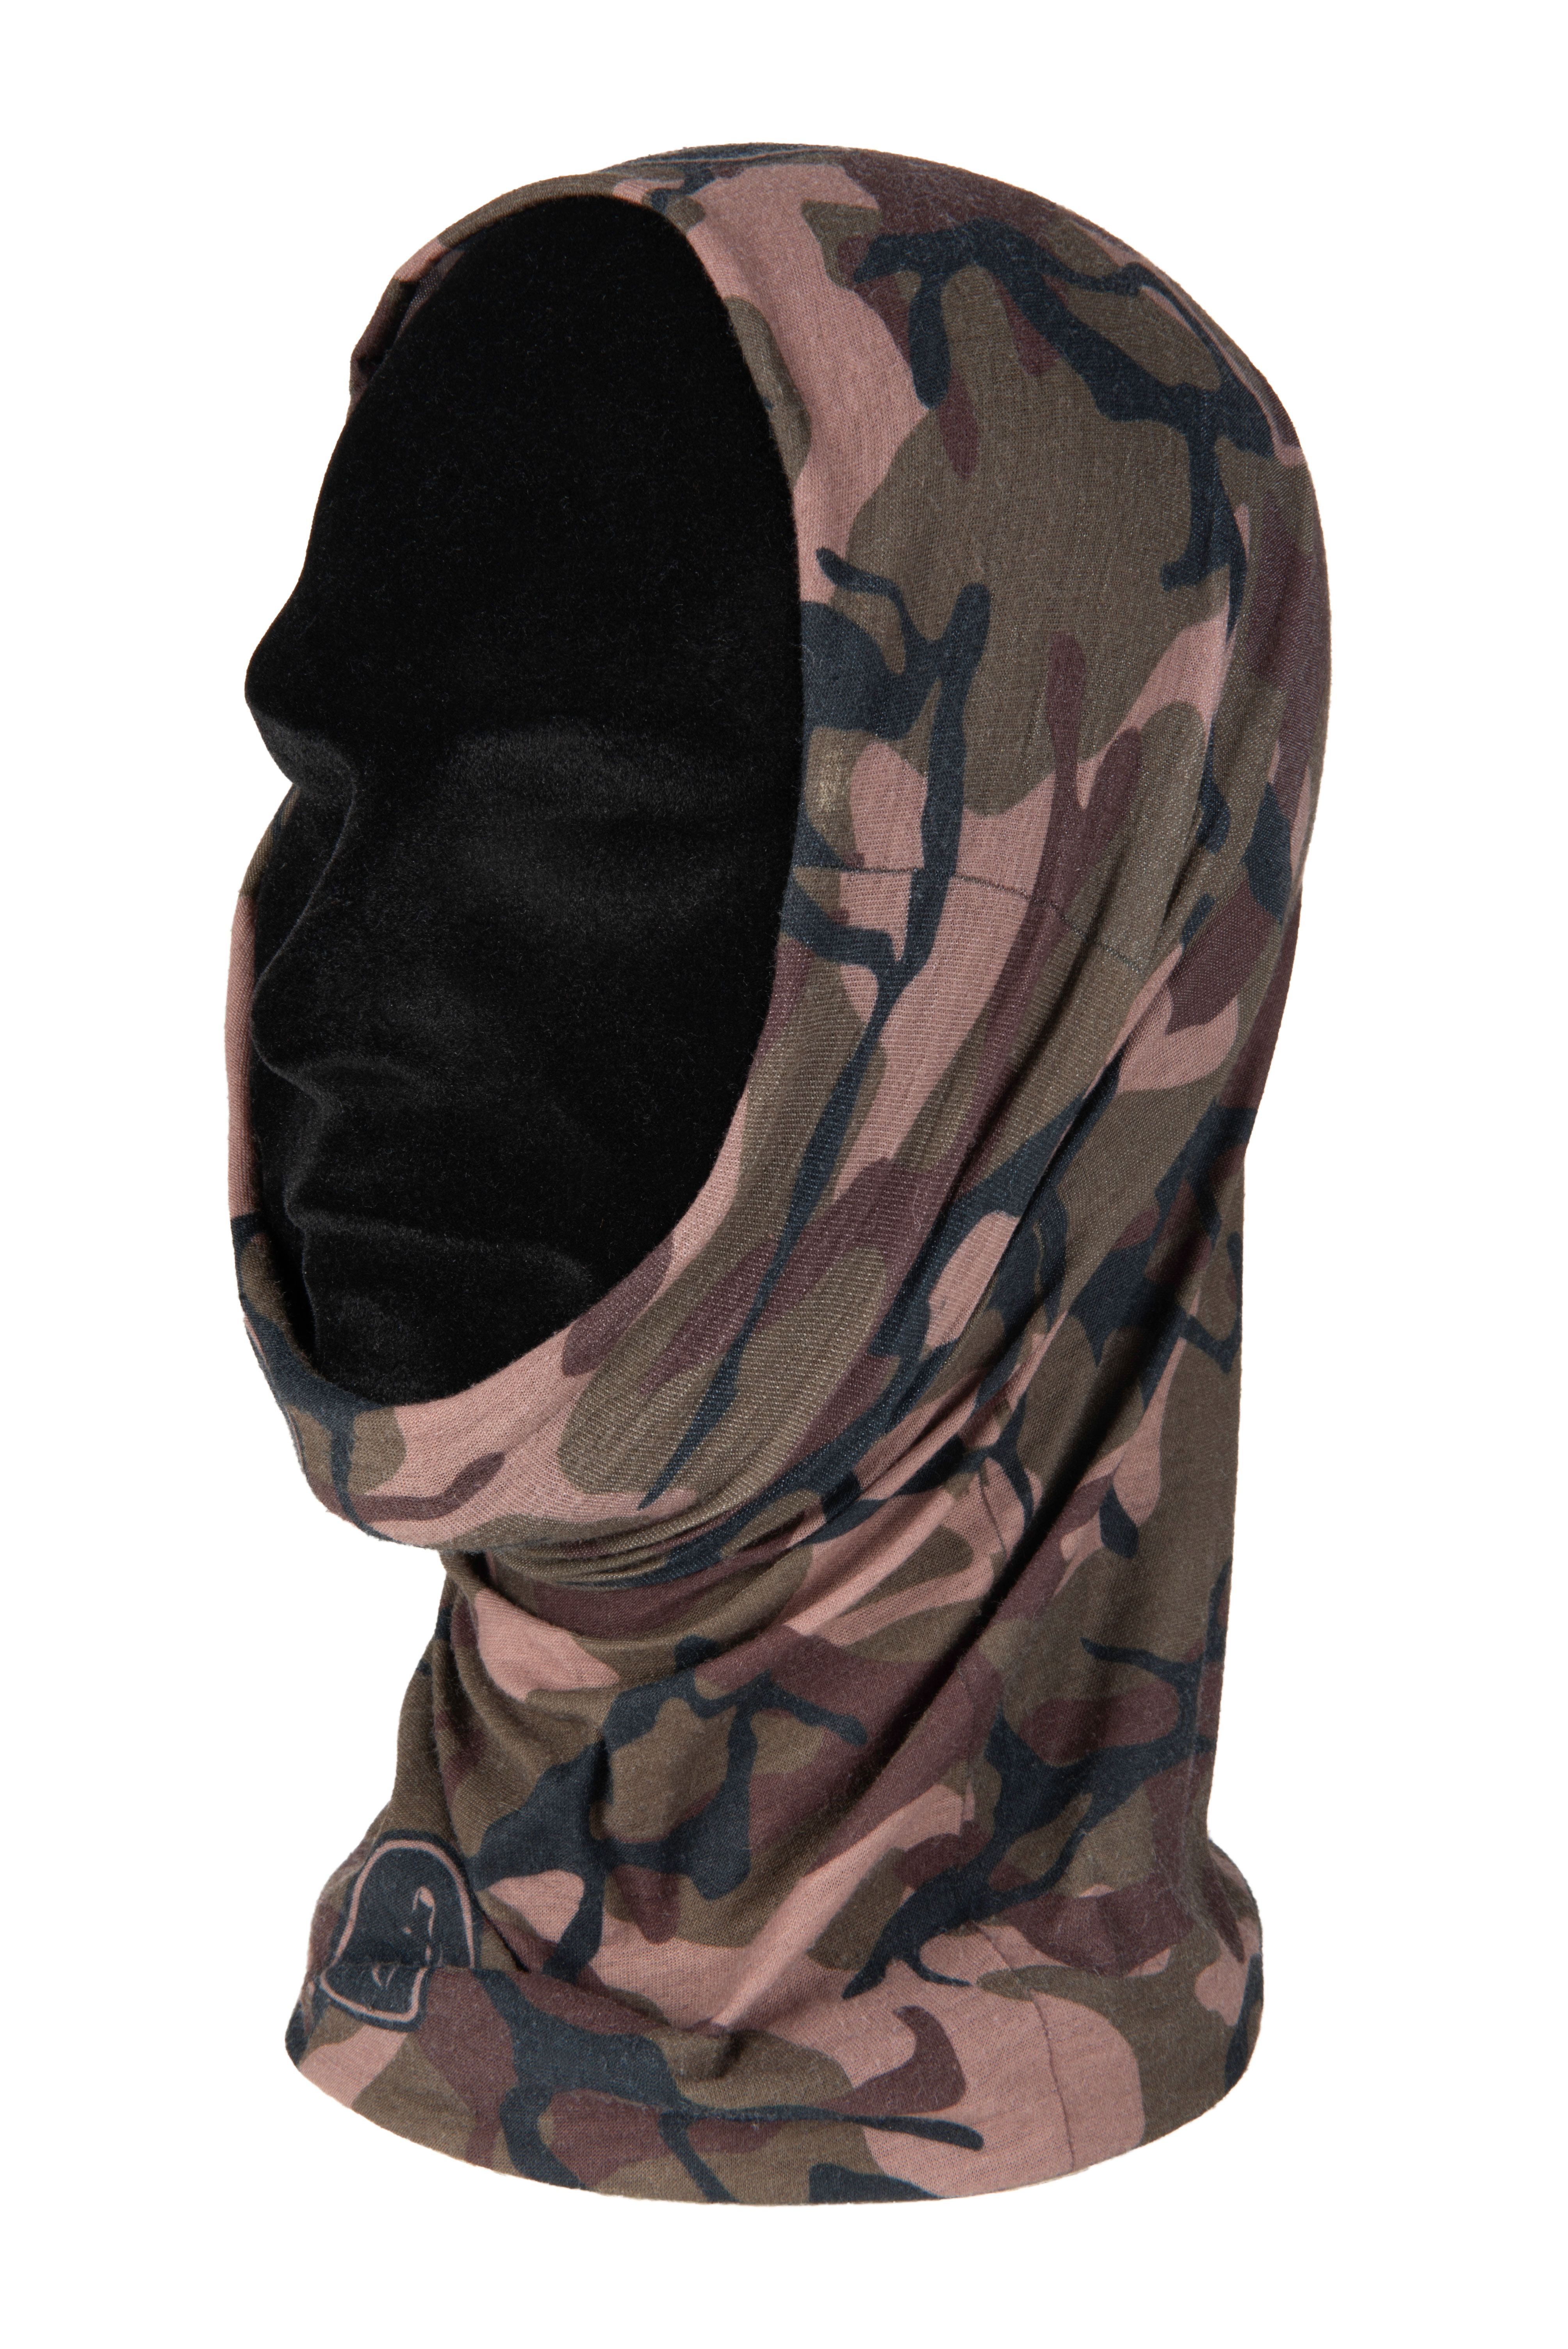 chh008_fox_camo_snood_worn_as_head_scarfjpg